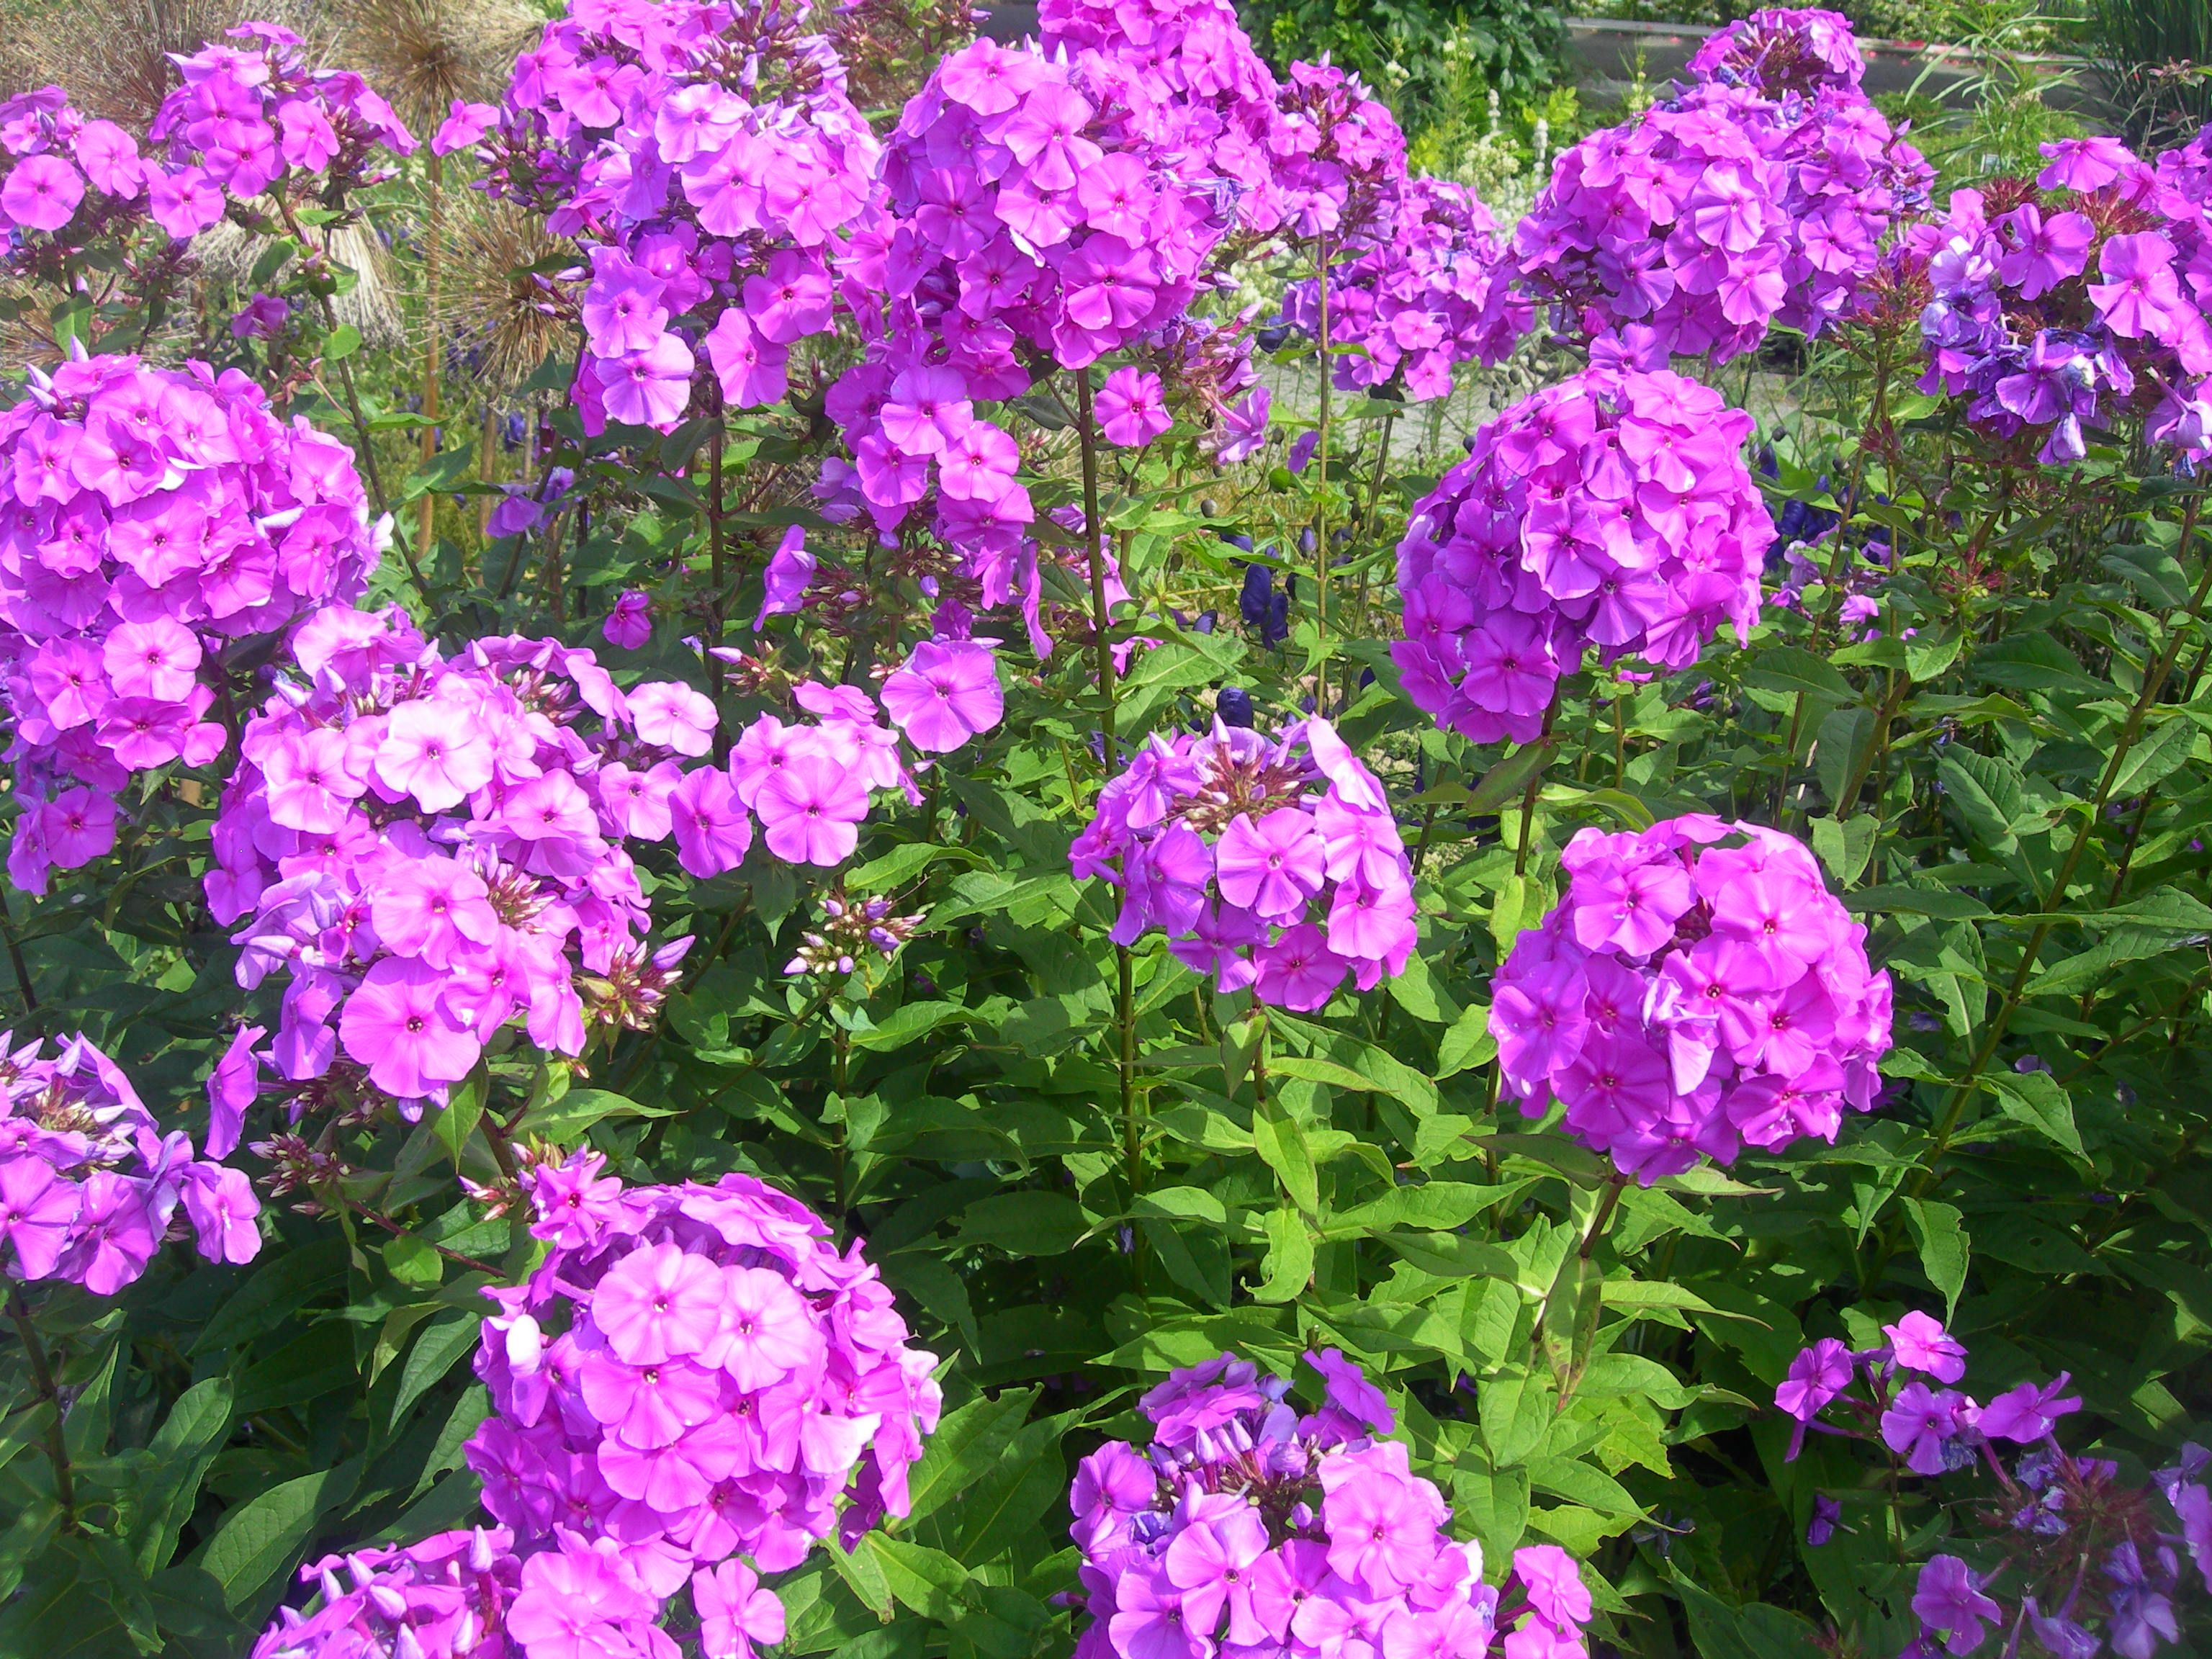 glamor feet phlox choice has a seen tall improvement is the almost in embassy rain can best another variety that reach for of garden pearl gardens perennial taller so height landscape mini varieties blog backdrop are they plants girl